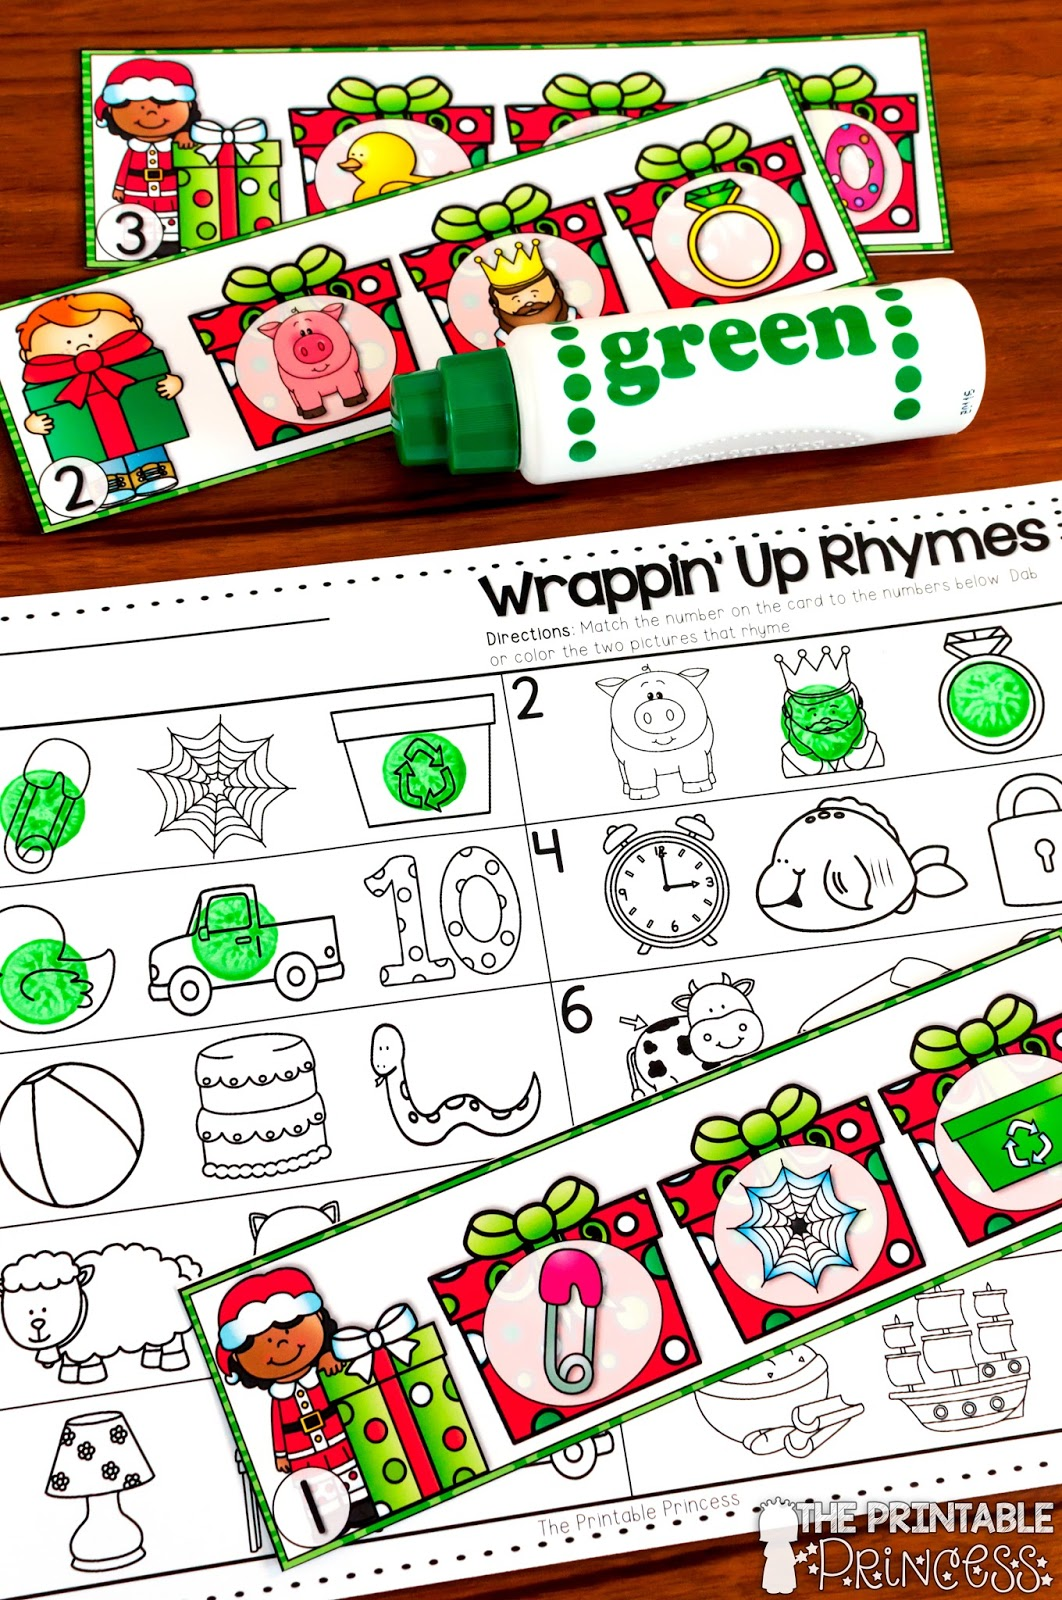 The Printable Princess Christmas Literacy And Math Activities For Kindergarten